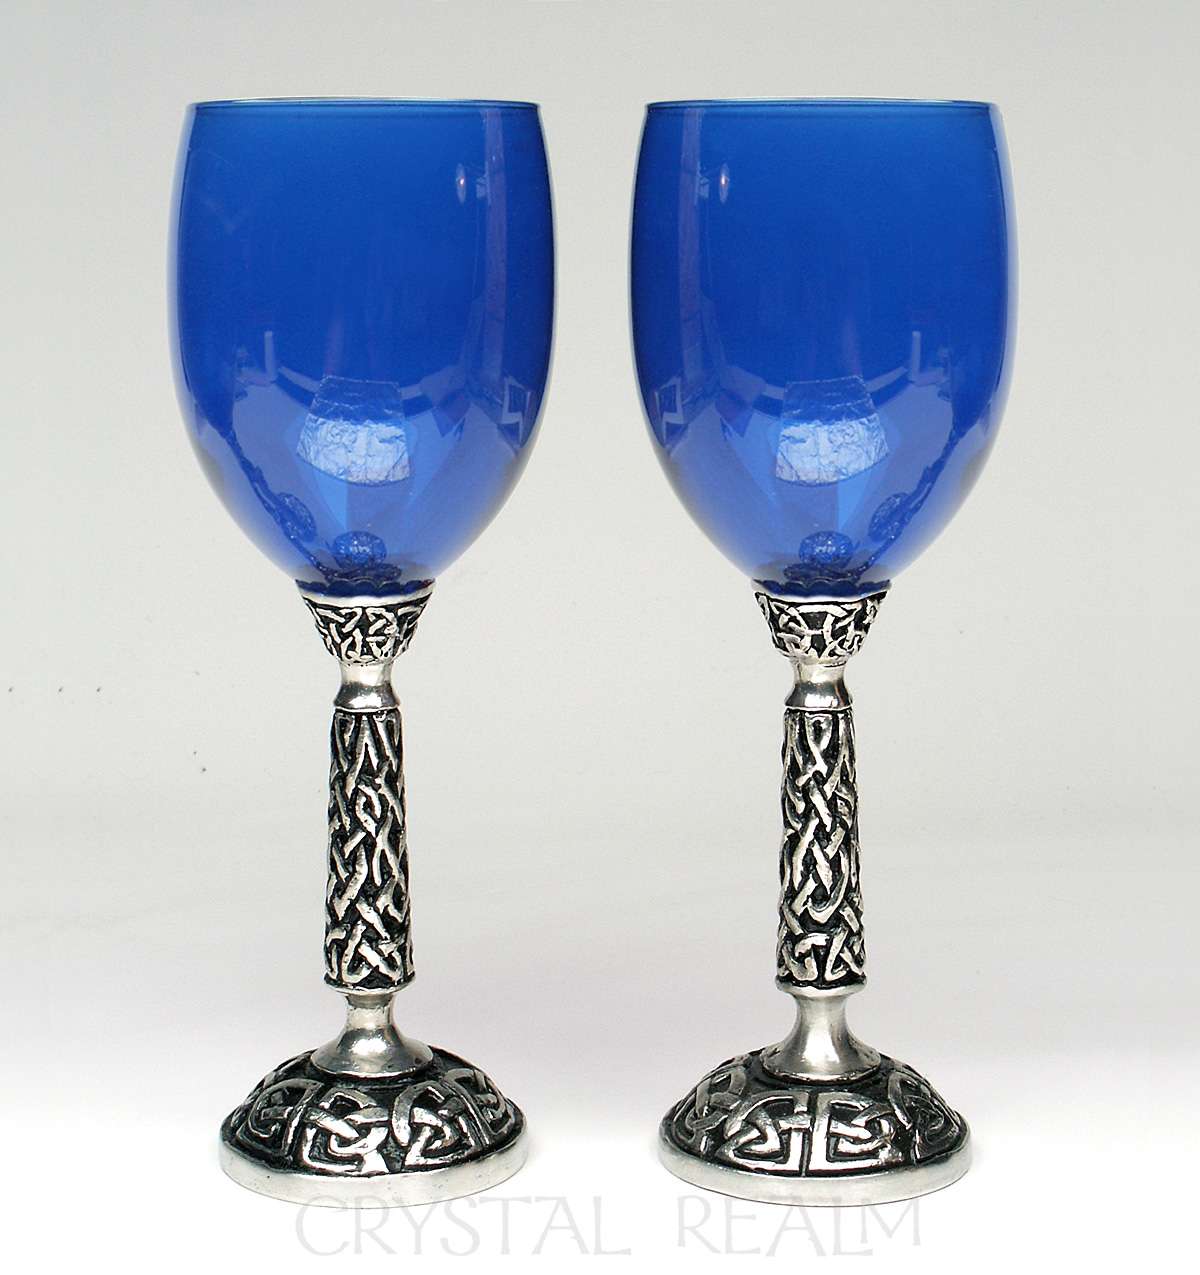 Royal blue wine glass or communion goblet with Celtic knotwork stem